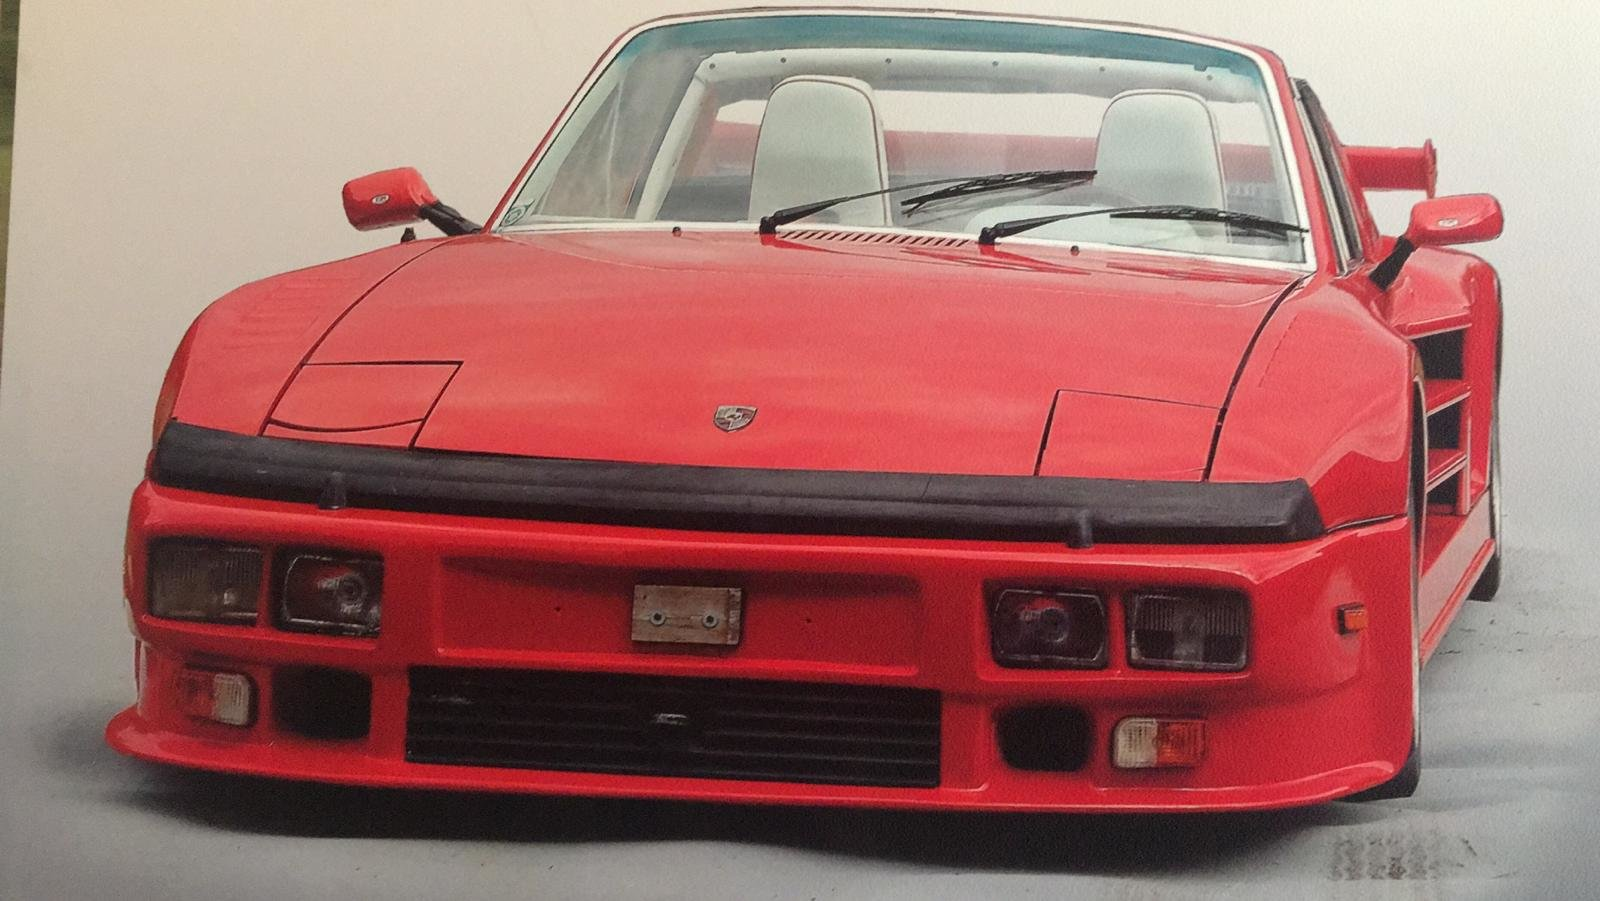 1975 1 OF 3 TUNED PORSCHE 914/6 2.0L - INSPIRED BY PIECH For Sale (picture 1 of 6)